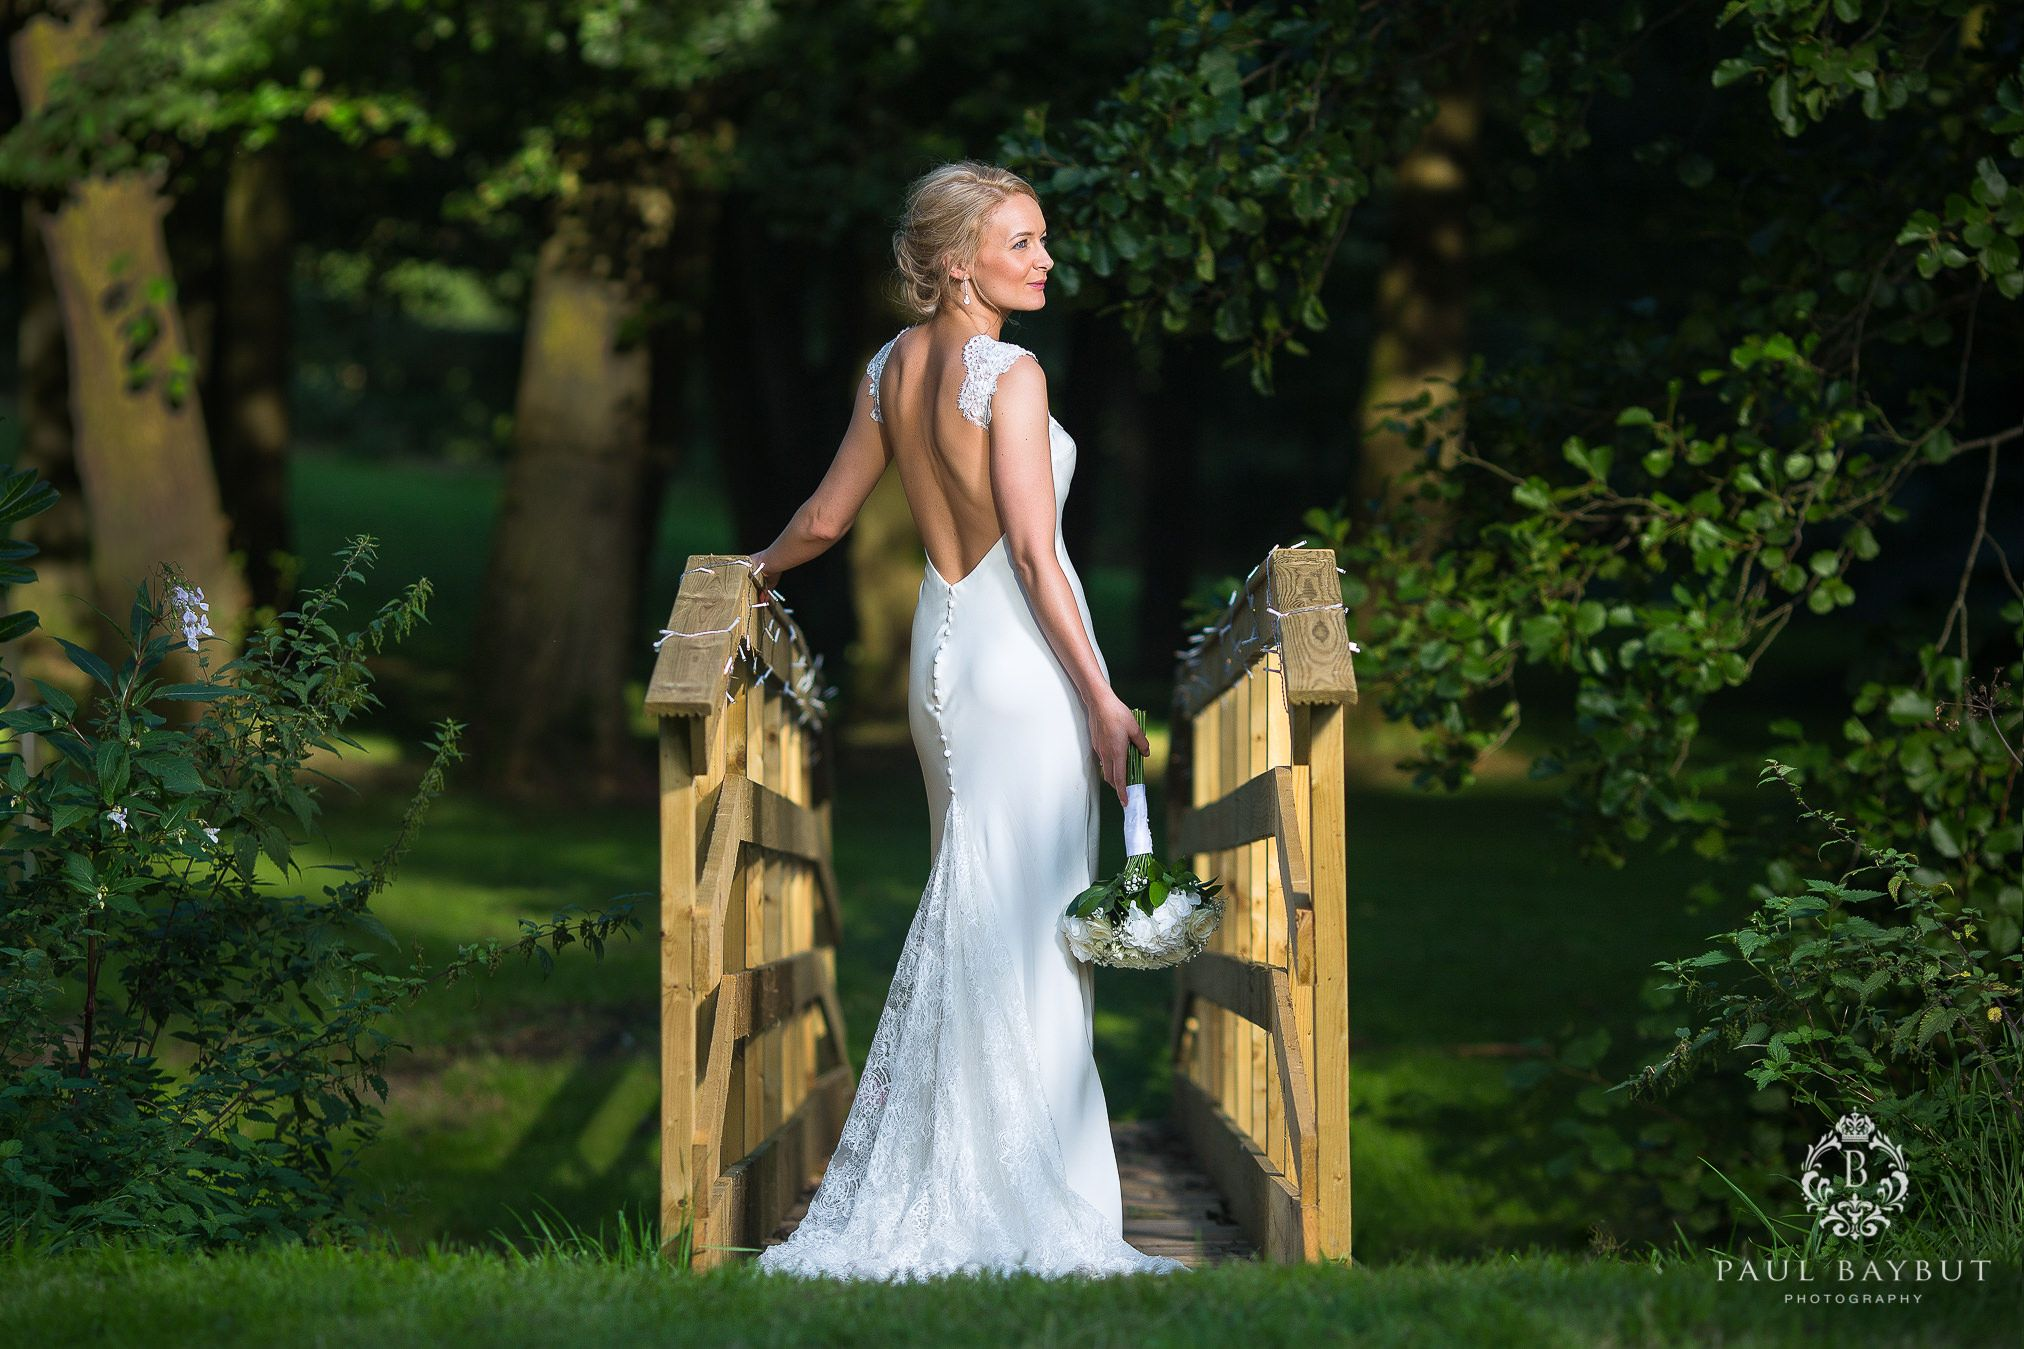 Blonde haired bride holding a flower bouquet shows off the back of her wedding dress whilst standing on a wooden bridge